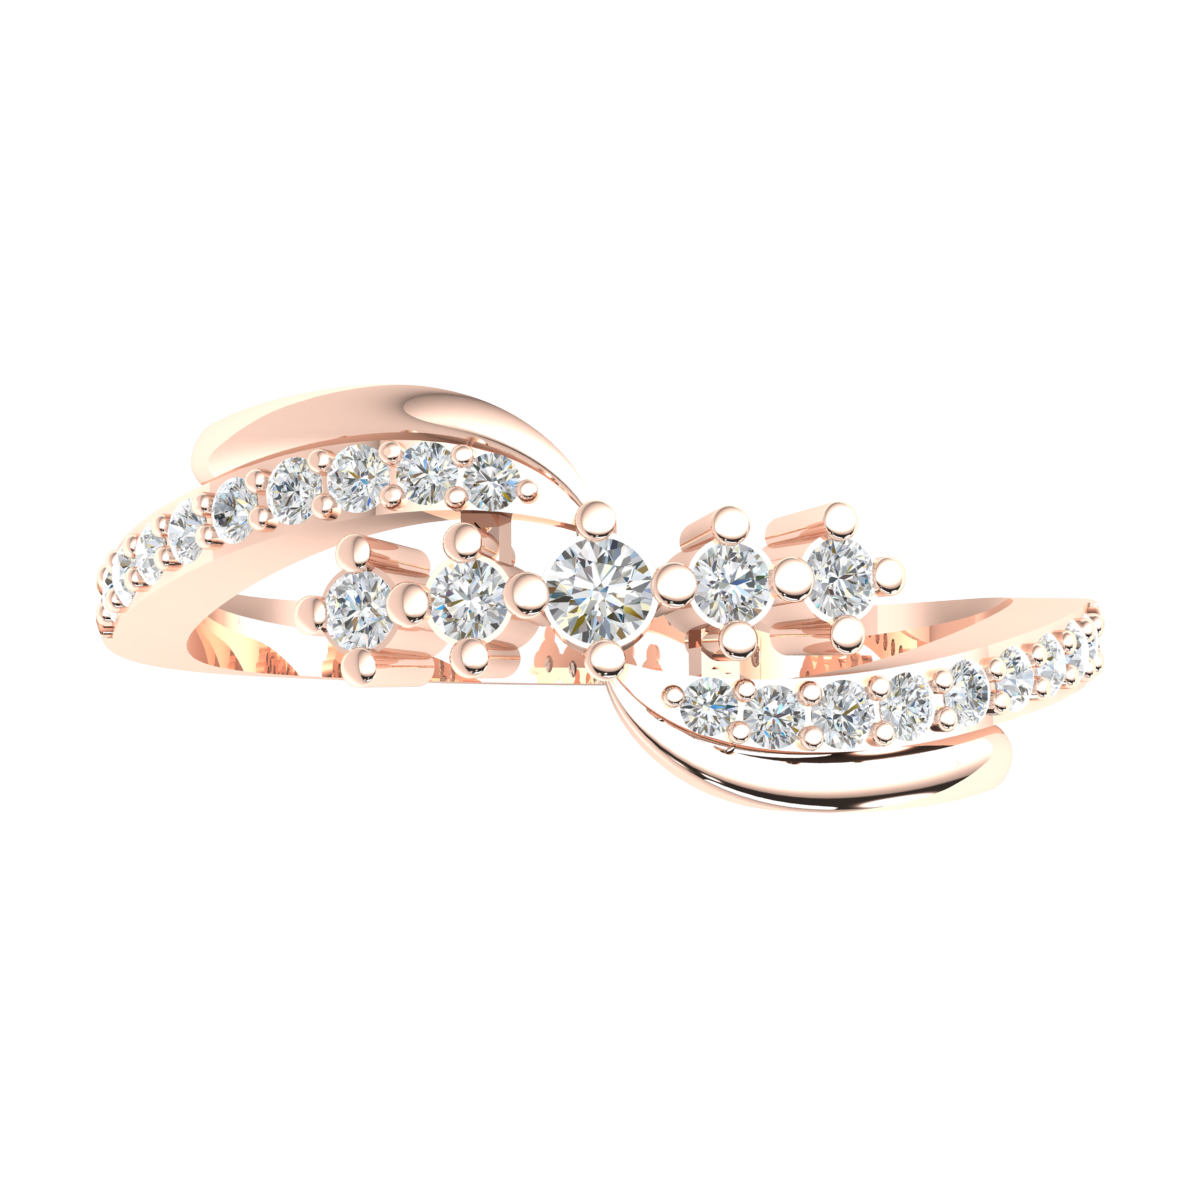 Details about  /10k Gold 0.25ct Round Cut Diamond Engagement Ring For Women Five Stone GH SI1